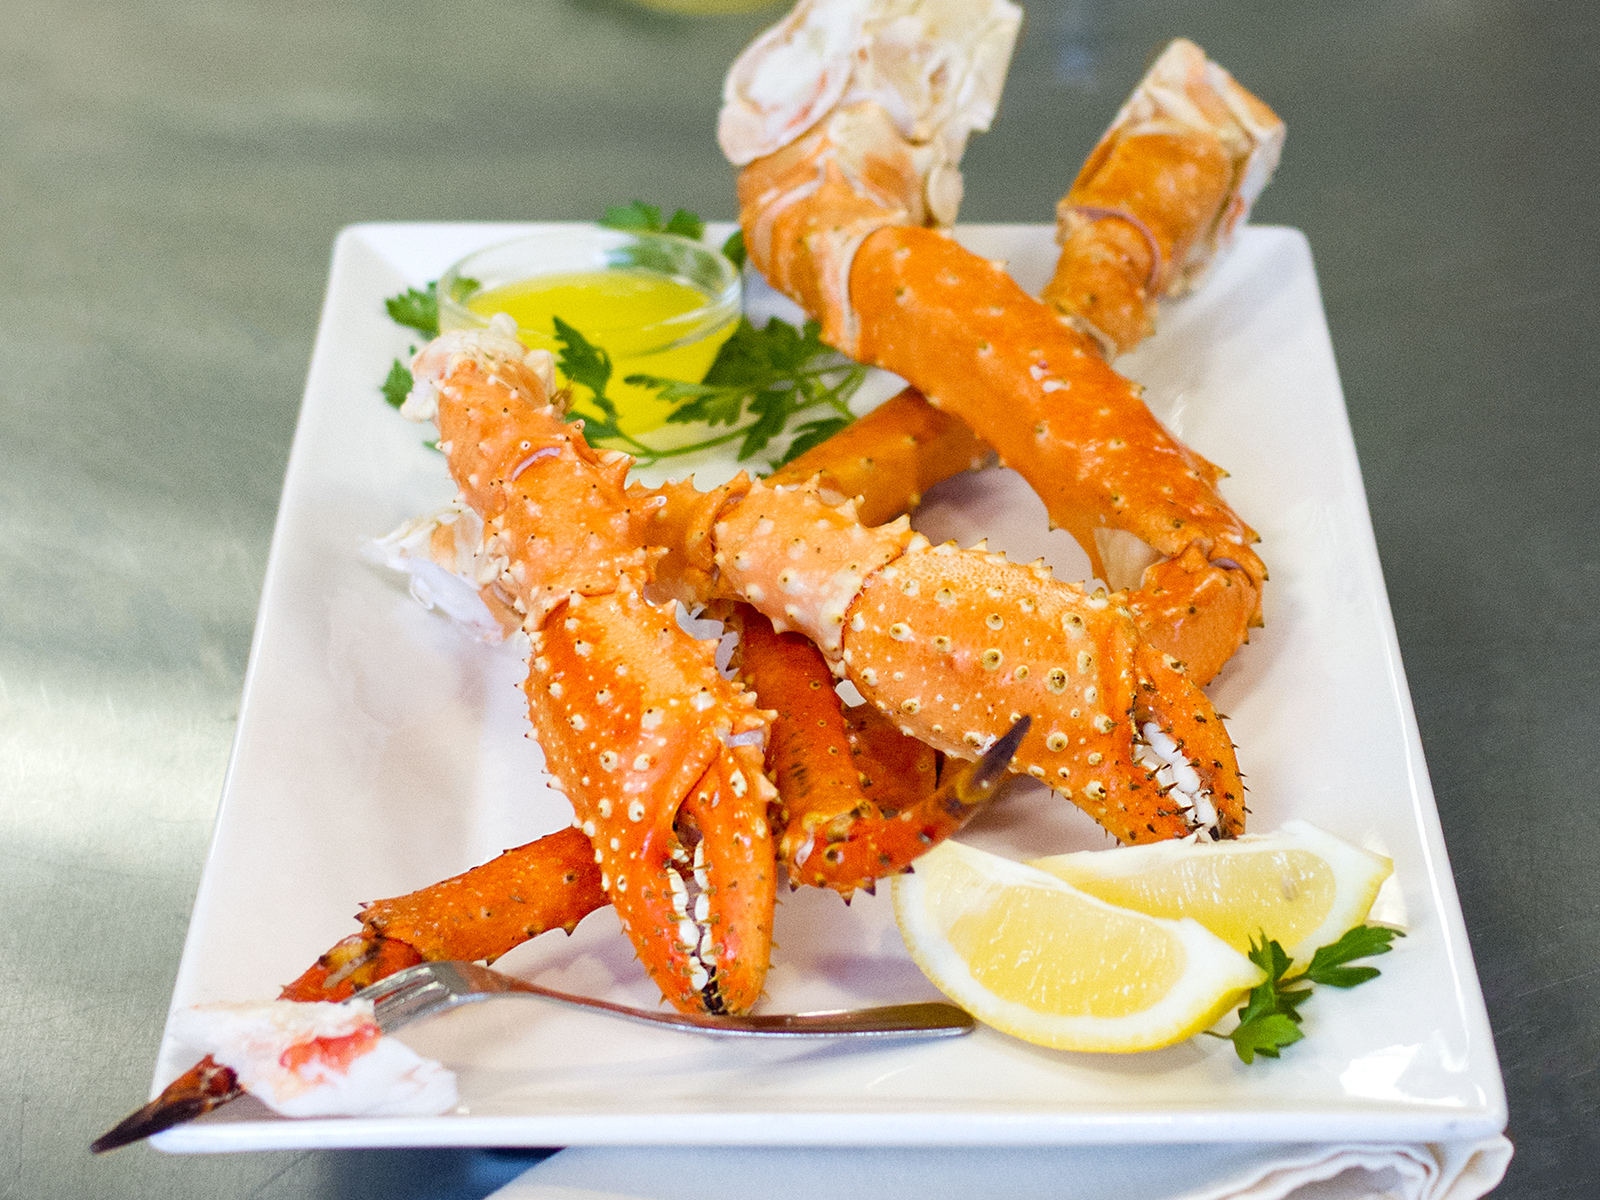 Golden King Crab Legs & Claws 20-25 Count (1/20 lb) 432105